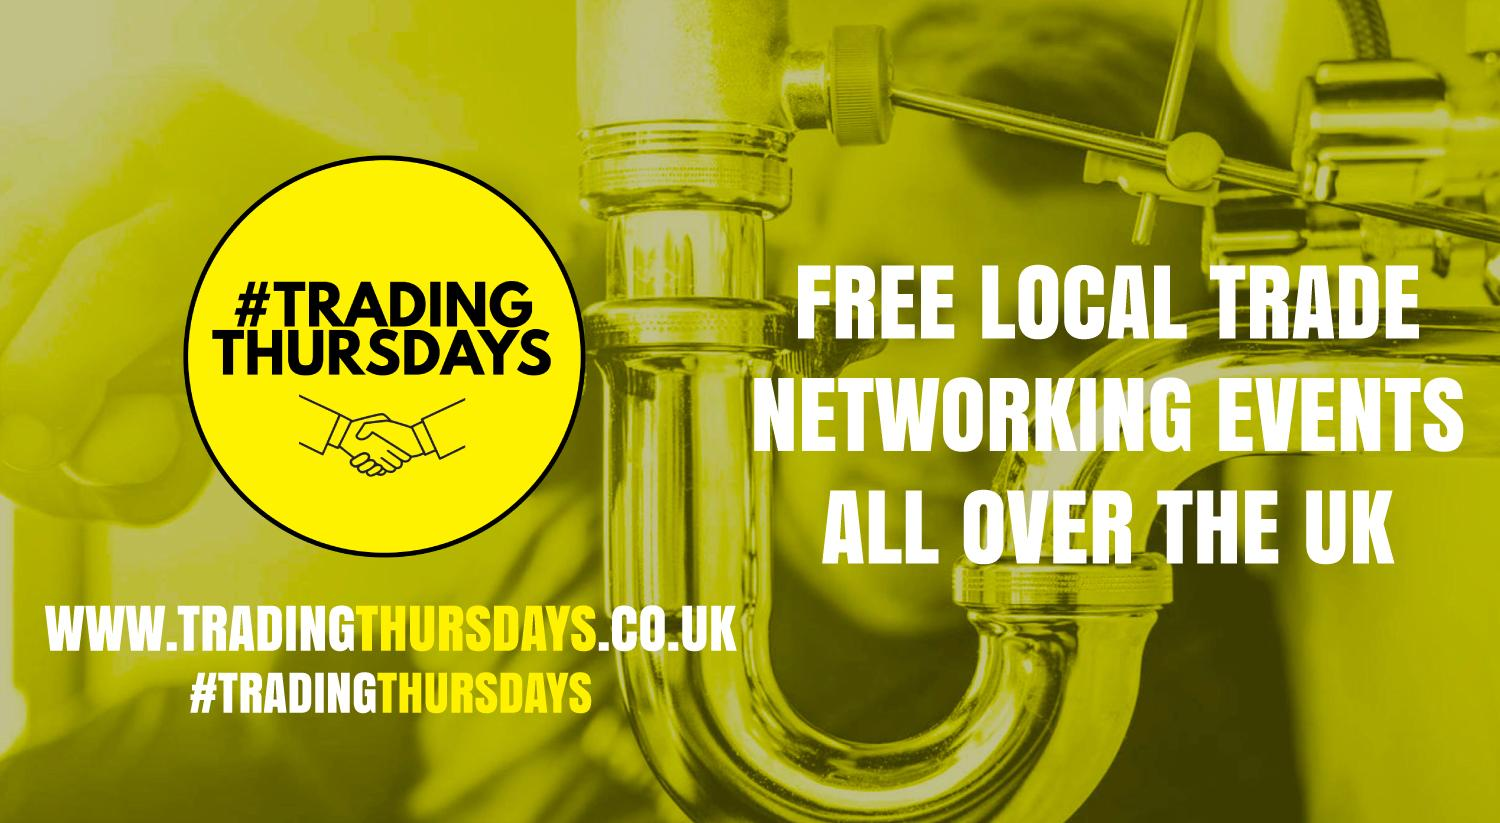 Trading Thursdays! Free networking event for traders in South Shields